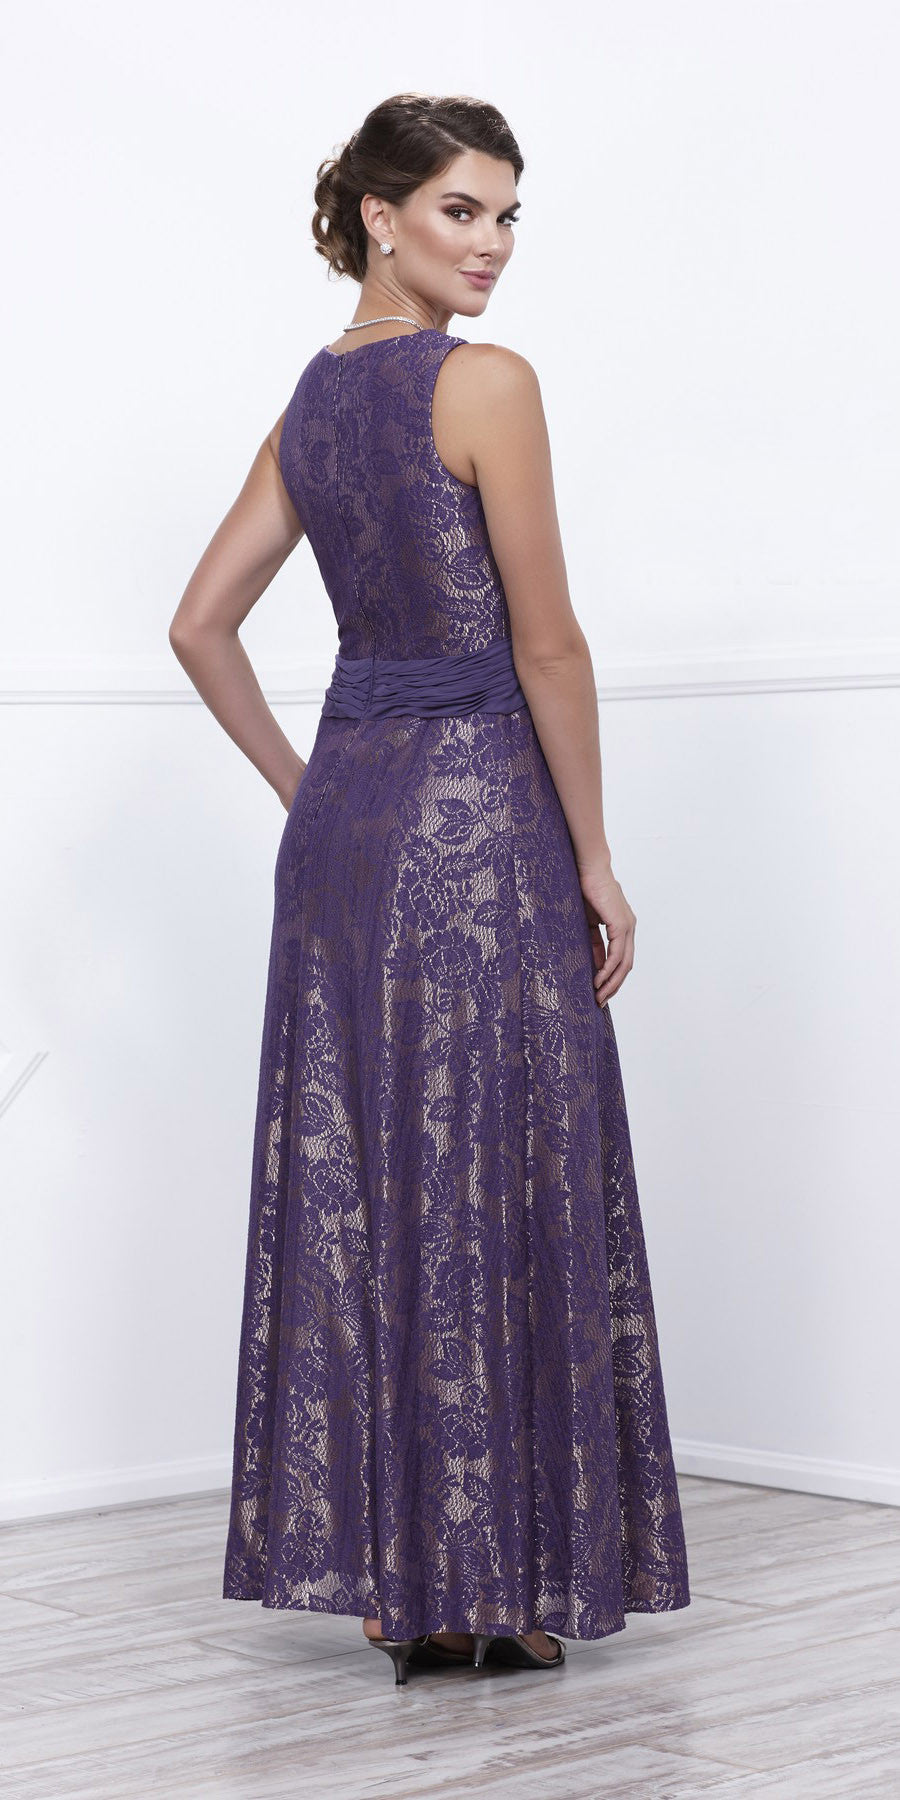 Violet Gold Metallic Lace Scoop Neck A-Line Dress Matching Bolero Back View